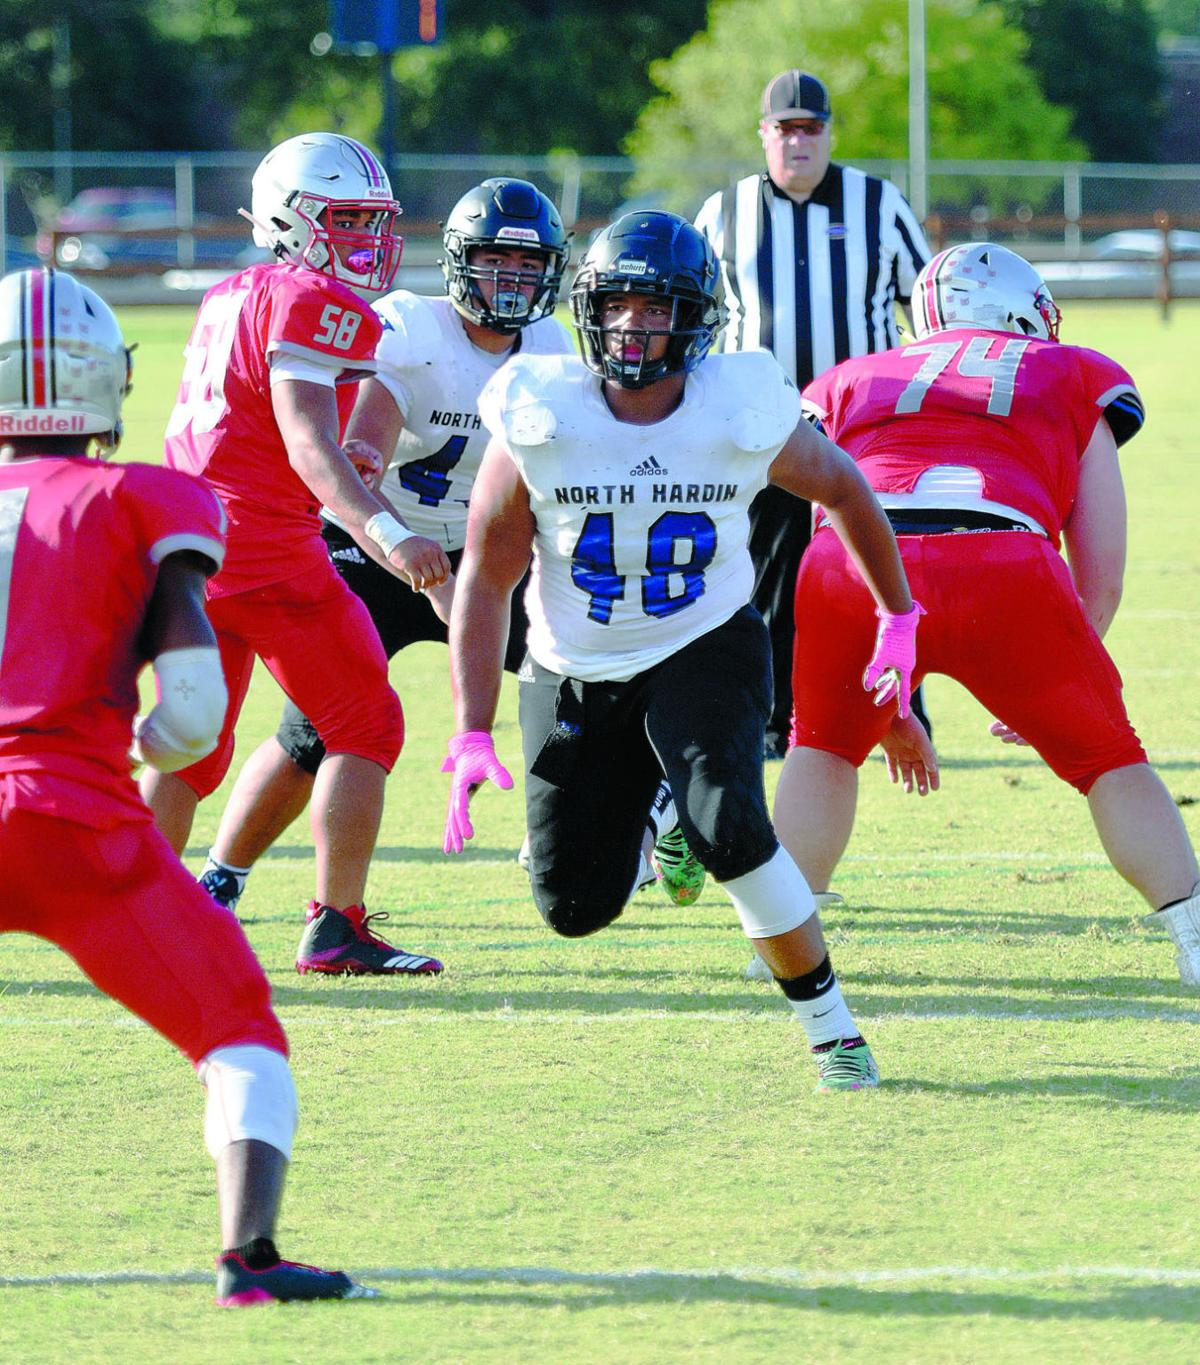 PREP FOOTBALL: North Hardin scores 7 TDs, 5 via the air in cruising to a win